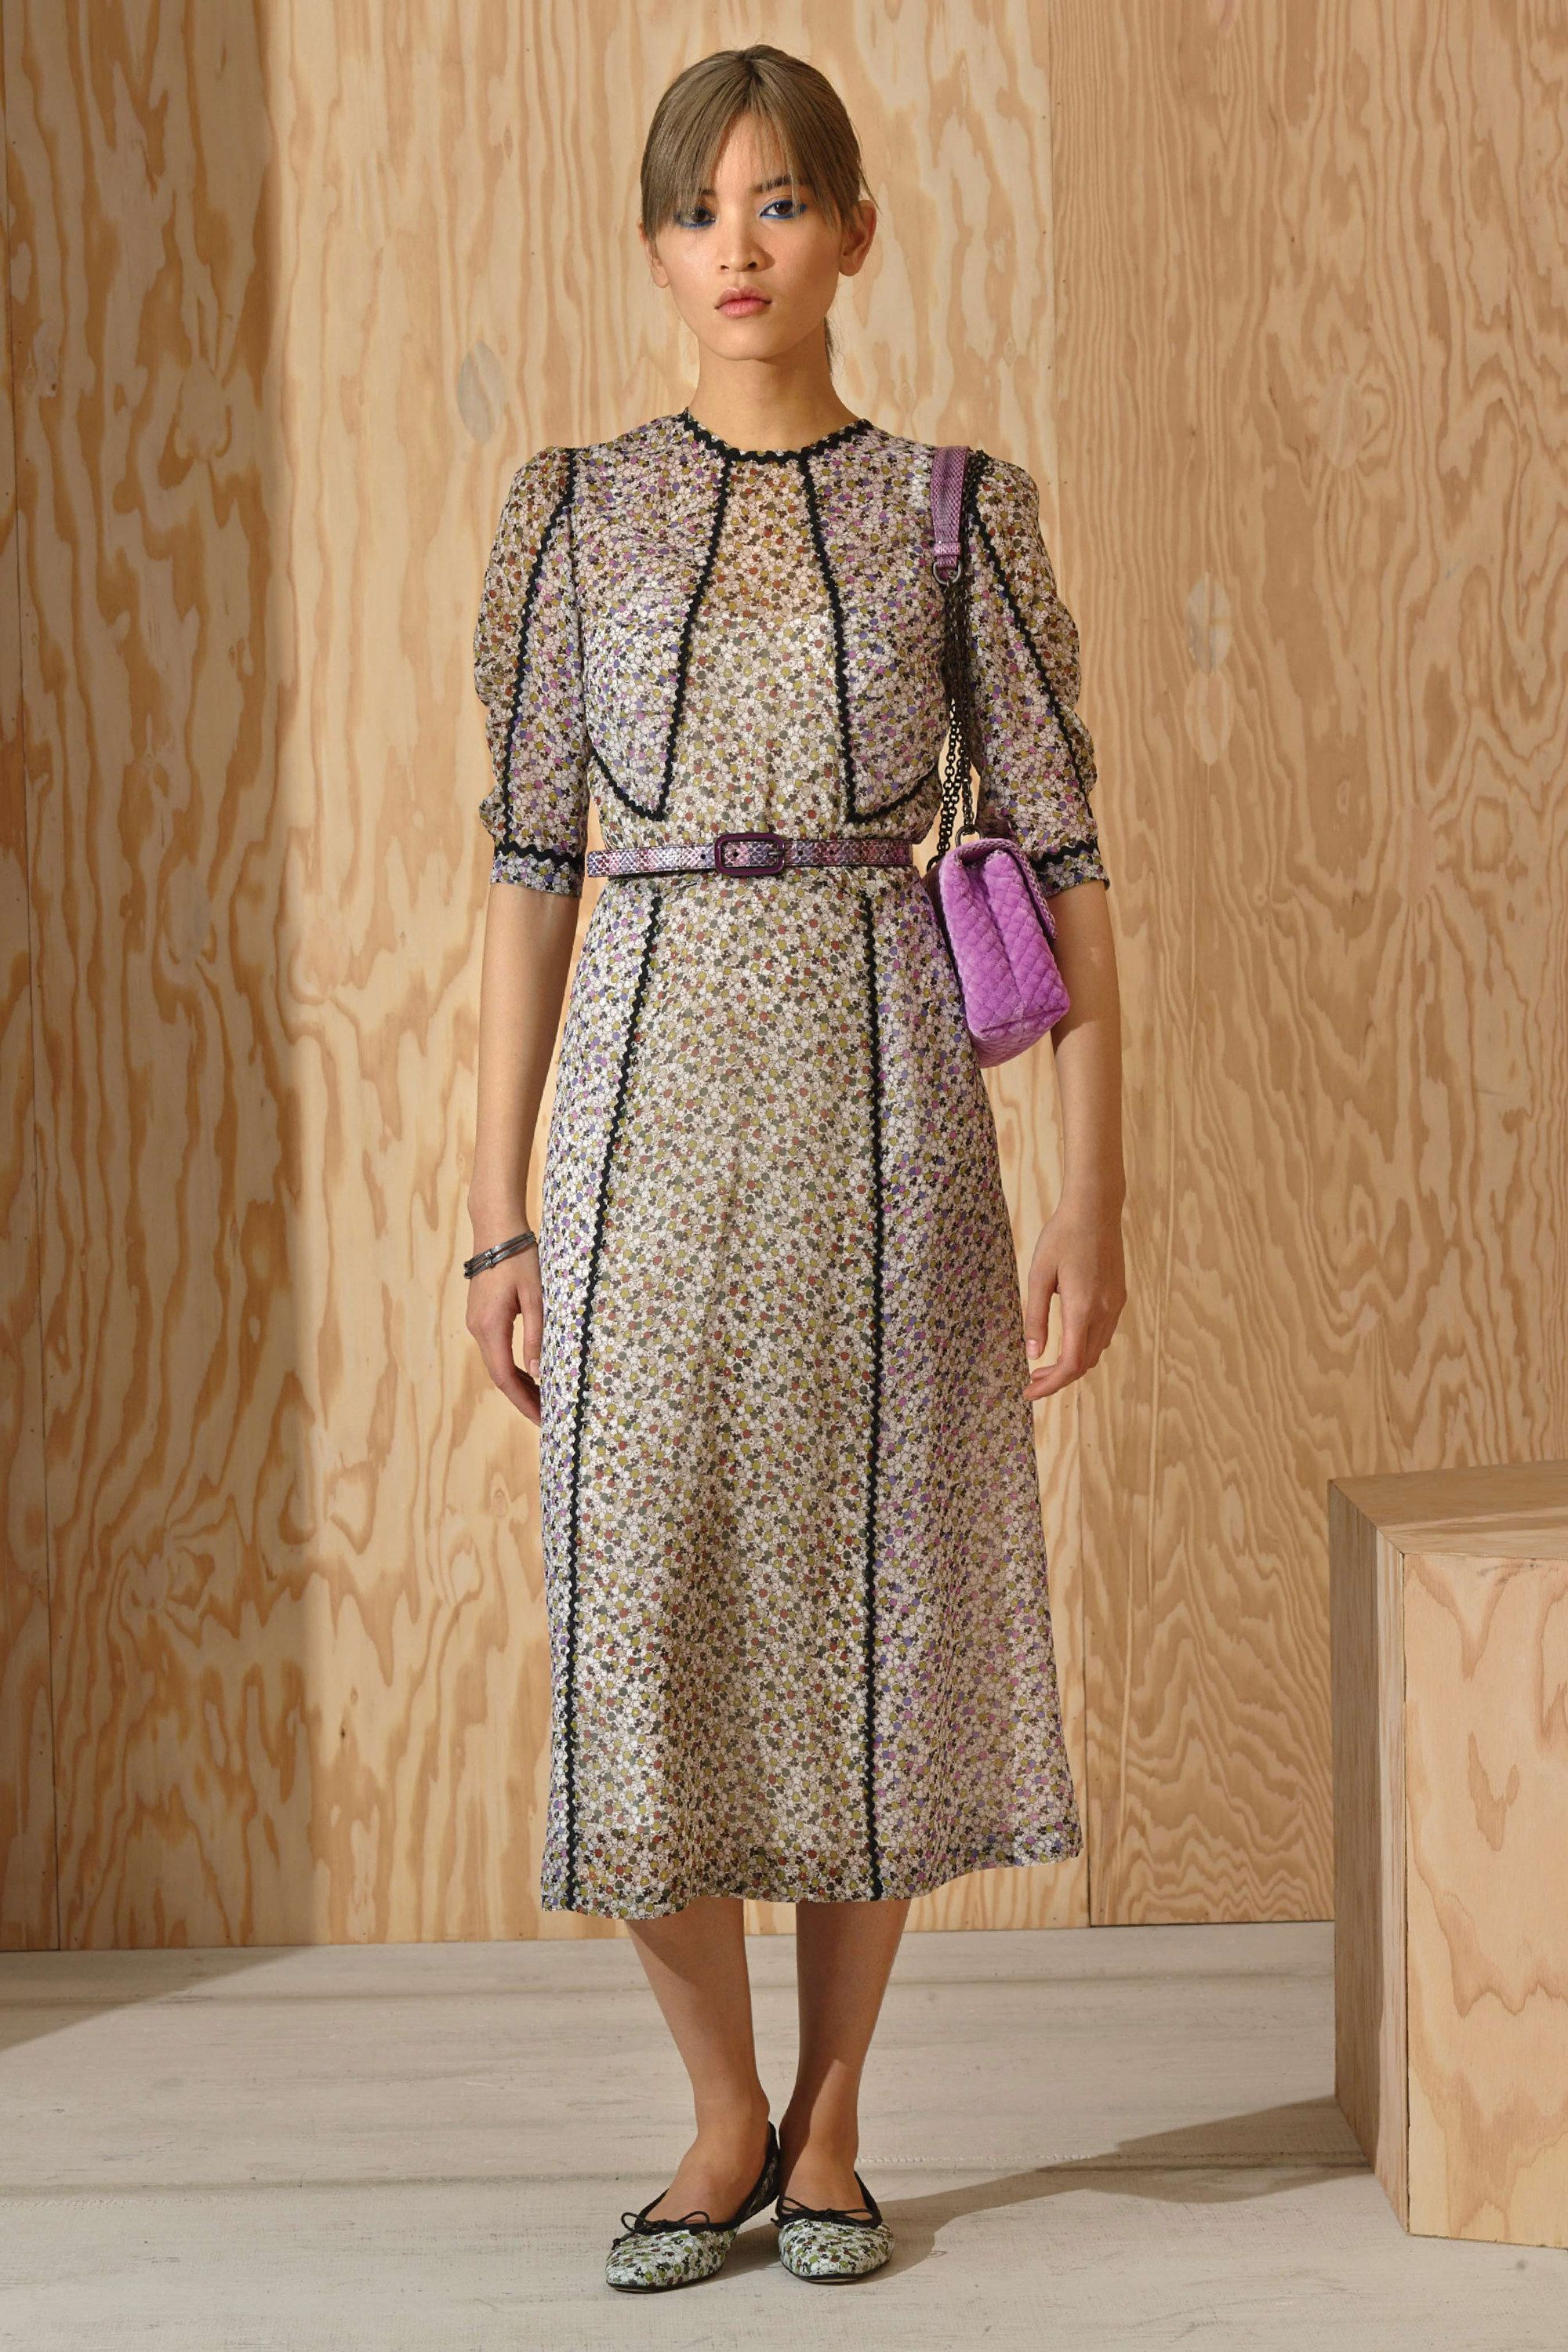 Bottega Veneta Pre-Fall 2016 Fashion Show